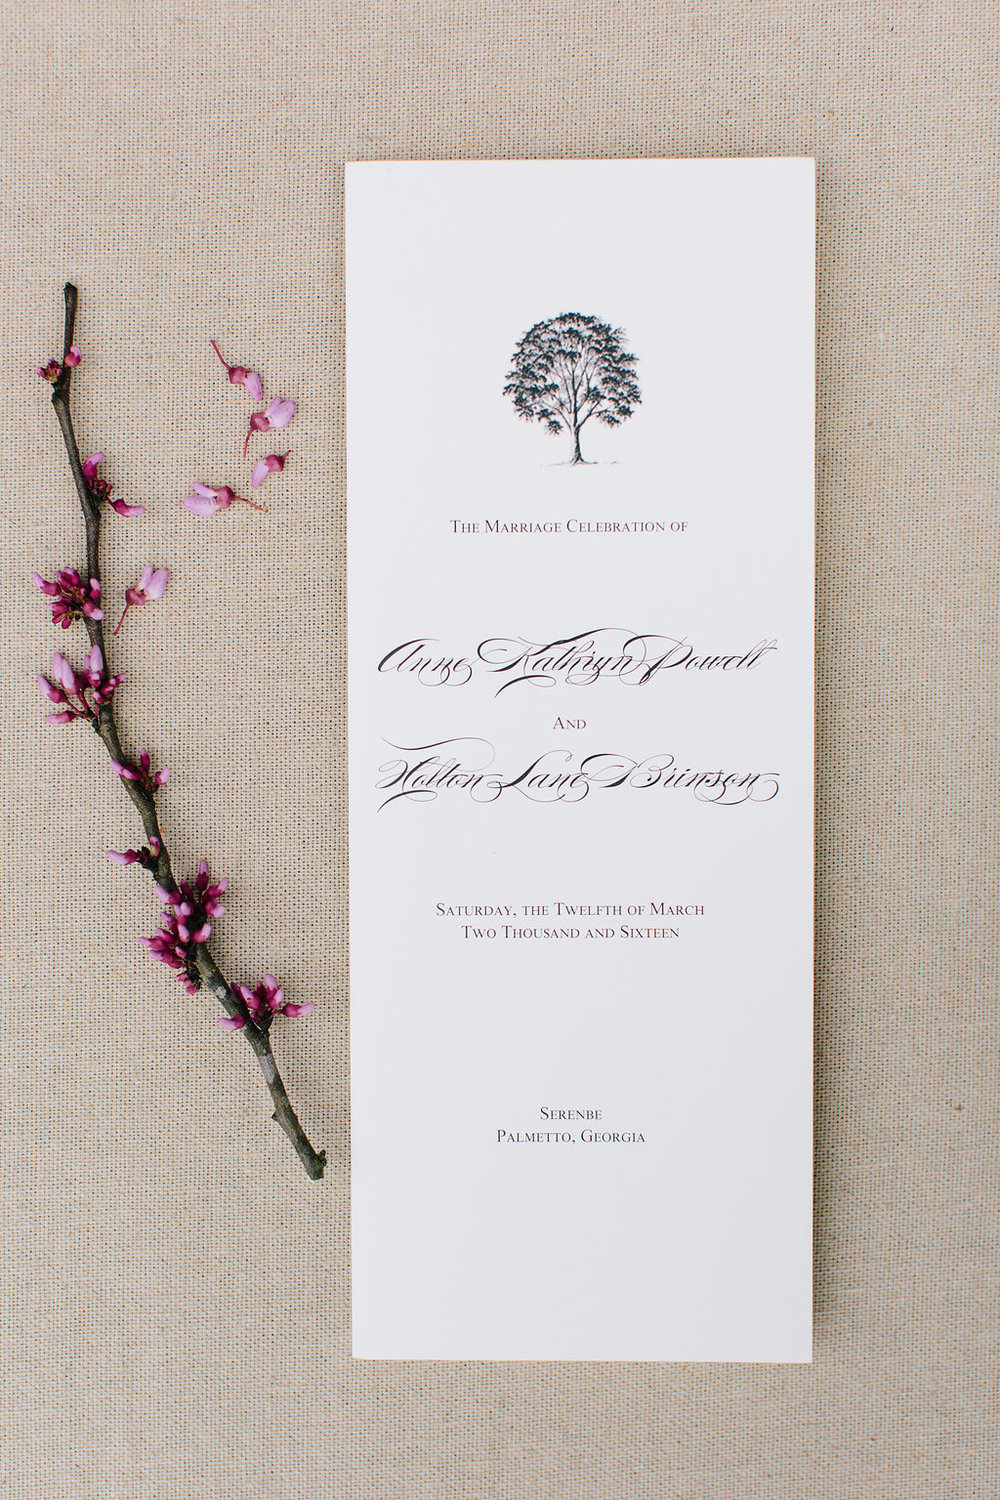 Custom wedding ceremony program in Augusta, GA